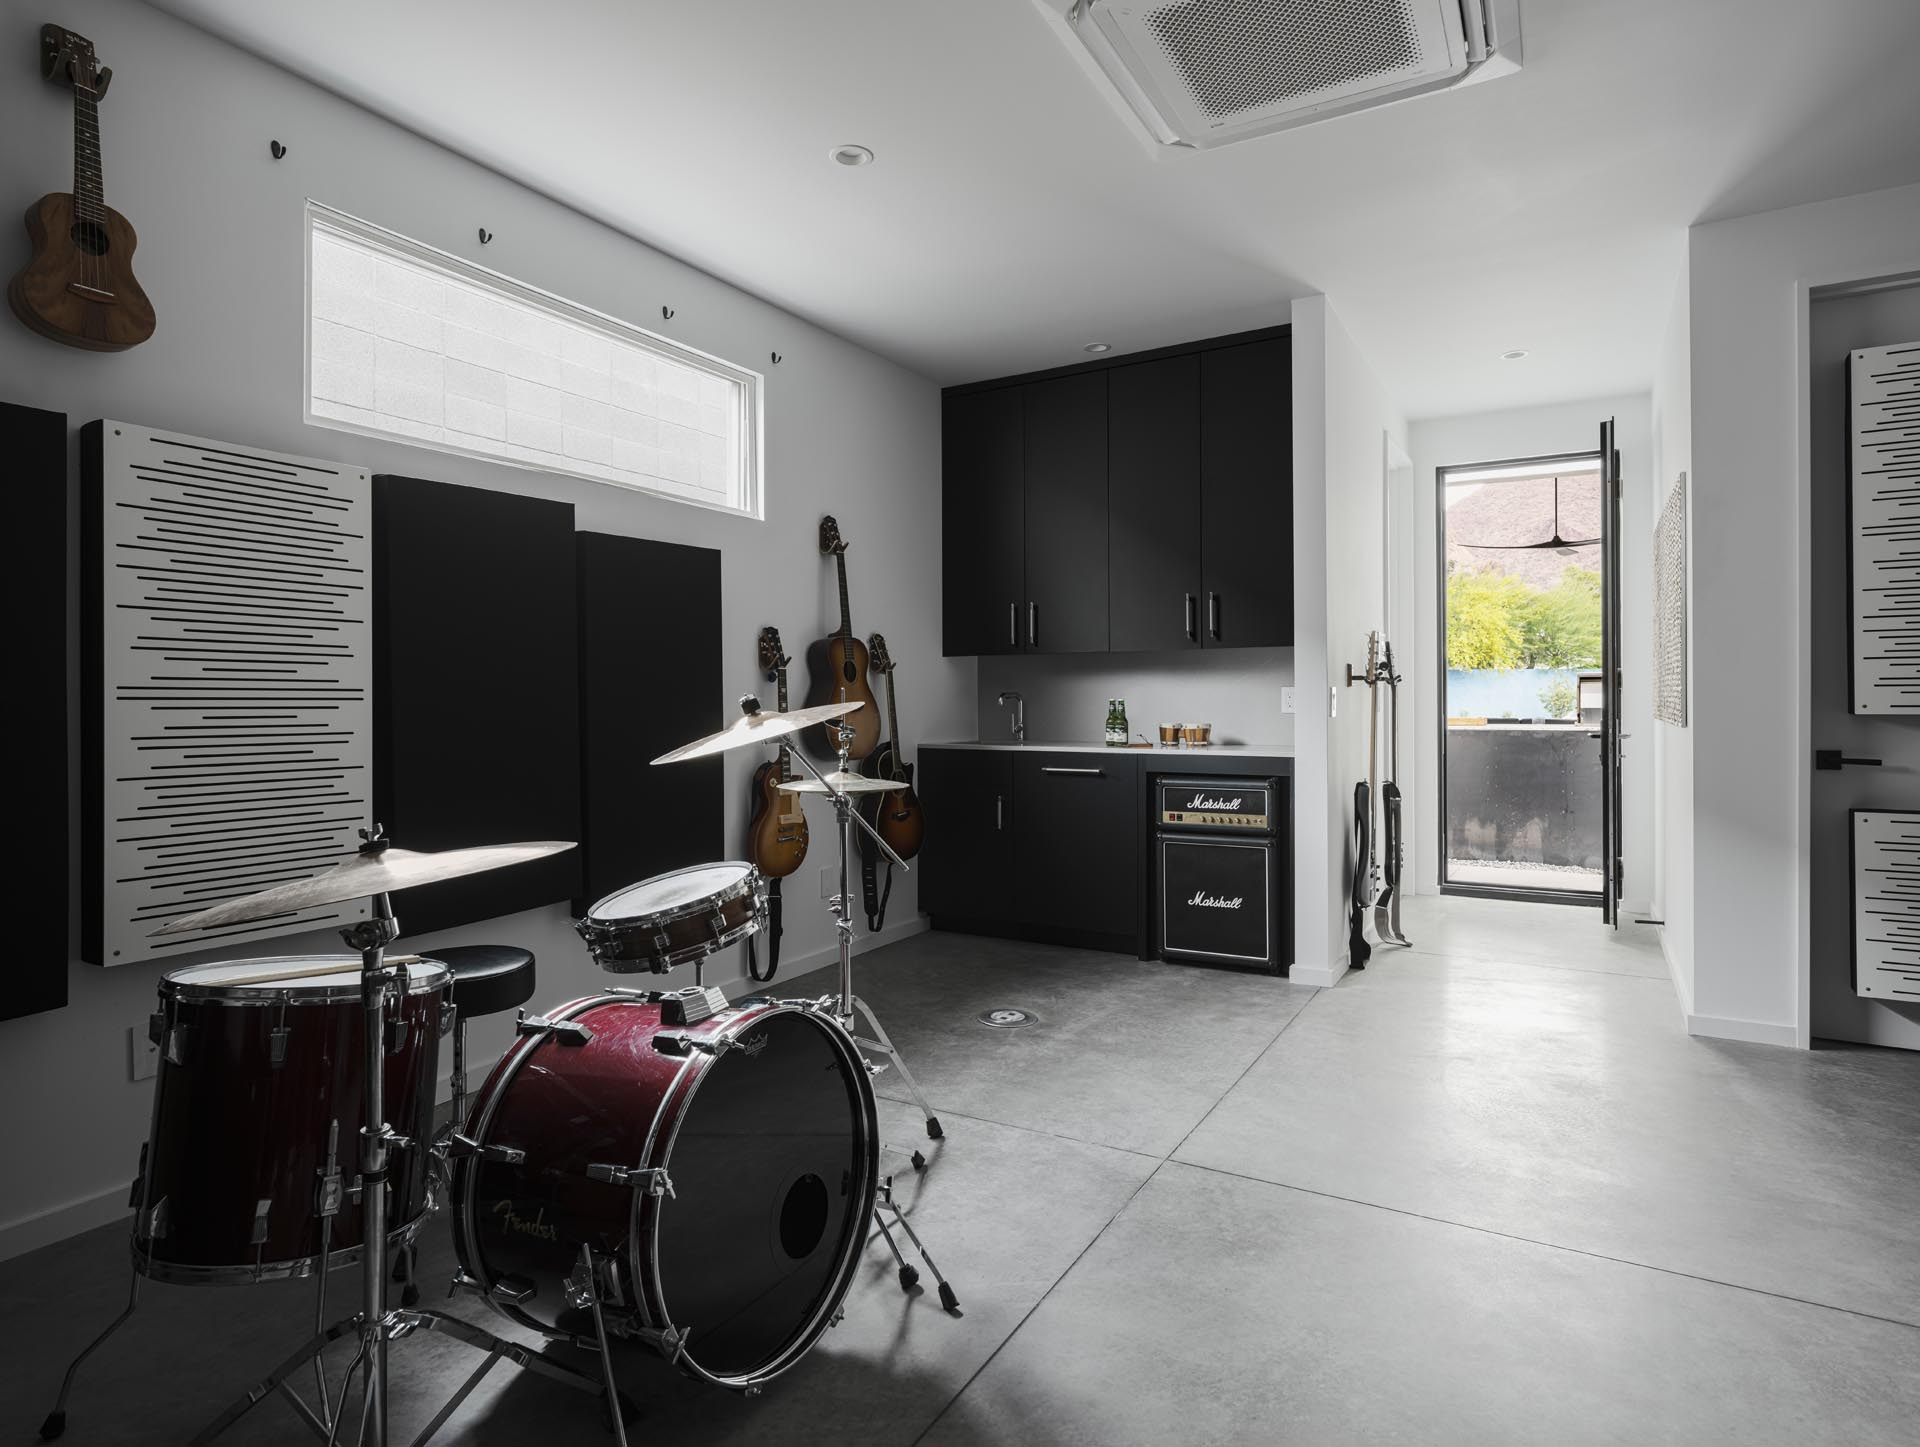 A detached 500 square foot music studio provides a place to play and record music, and there's a hidden roof deck on top for views of the valley.